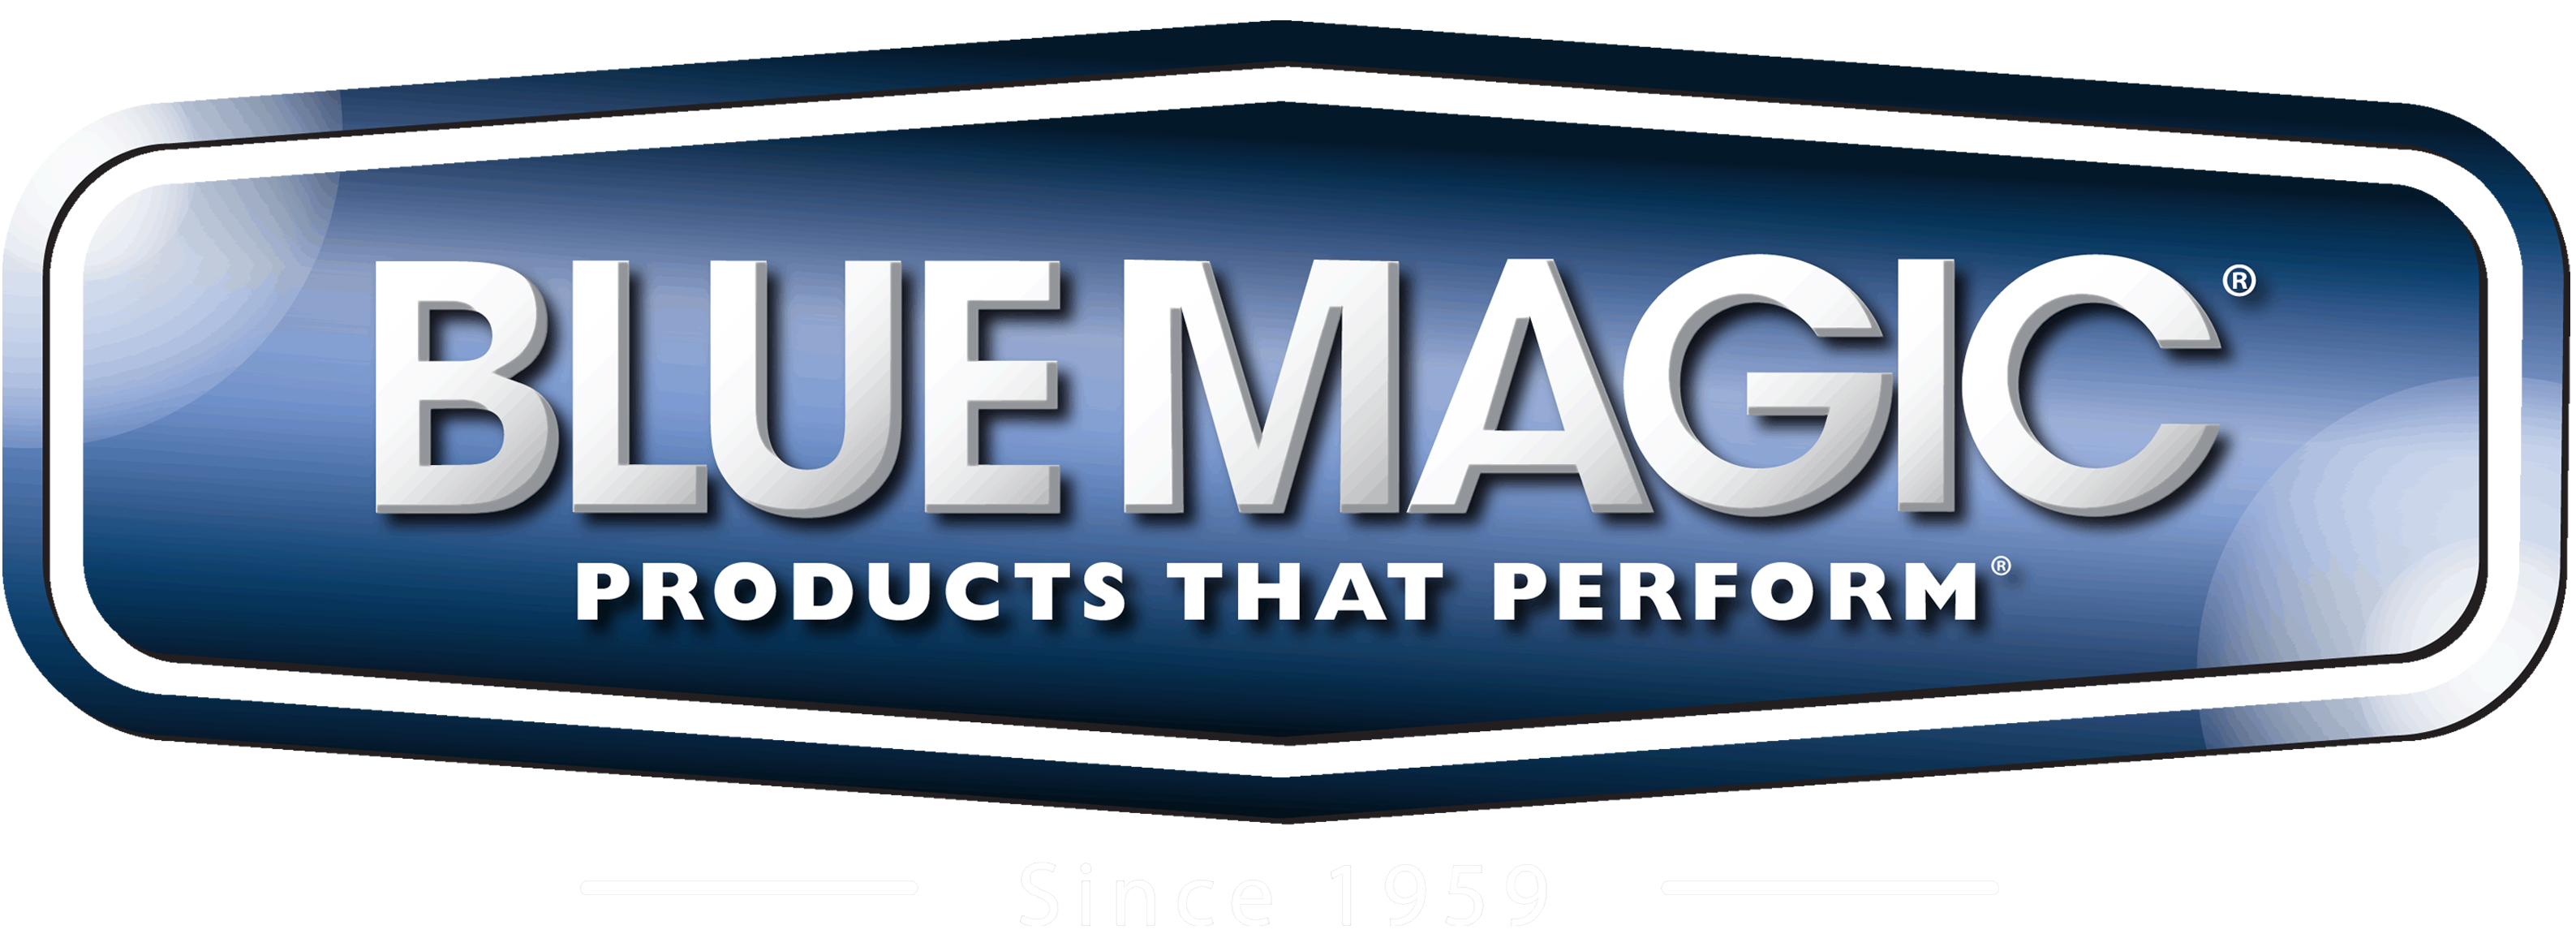 Blue Magic coupon codes